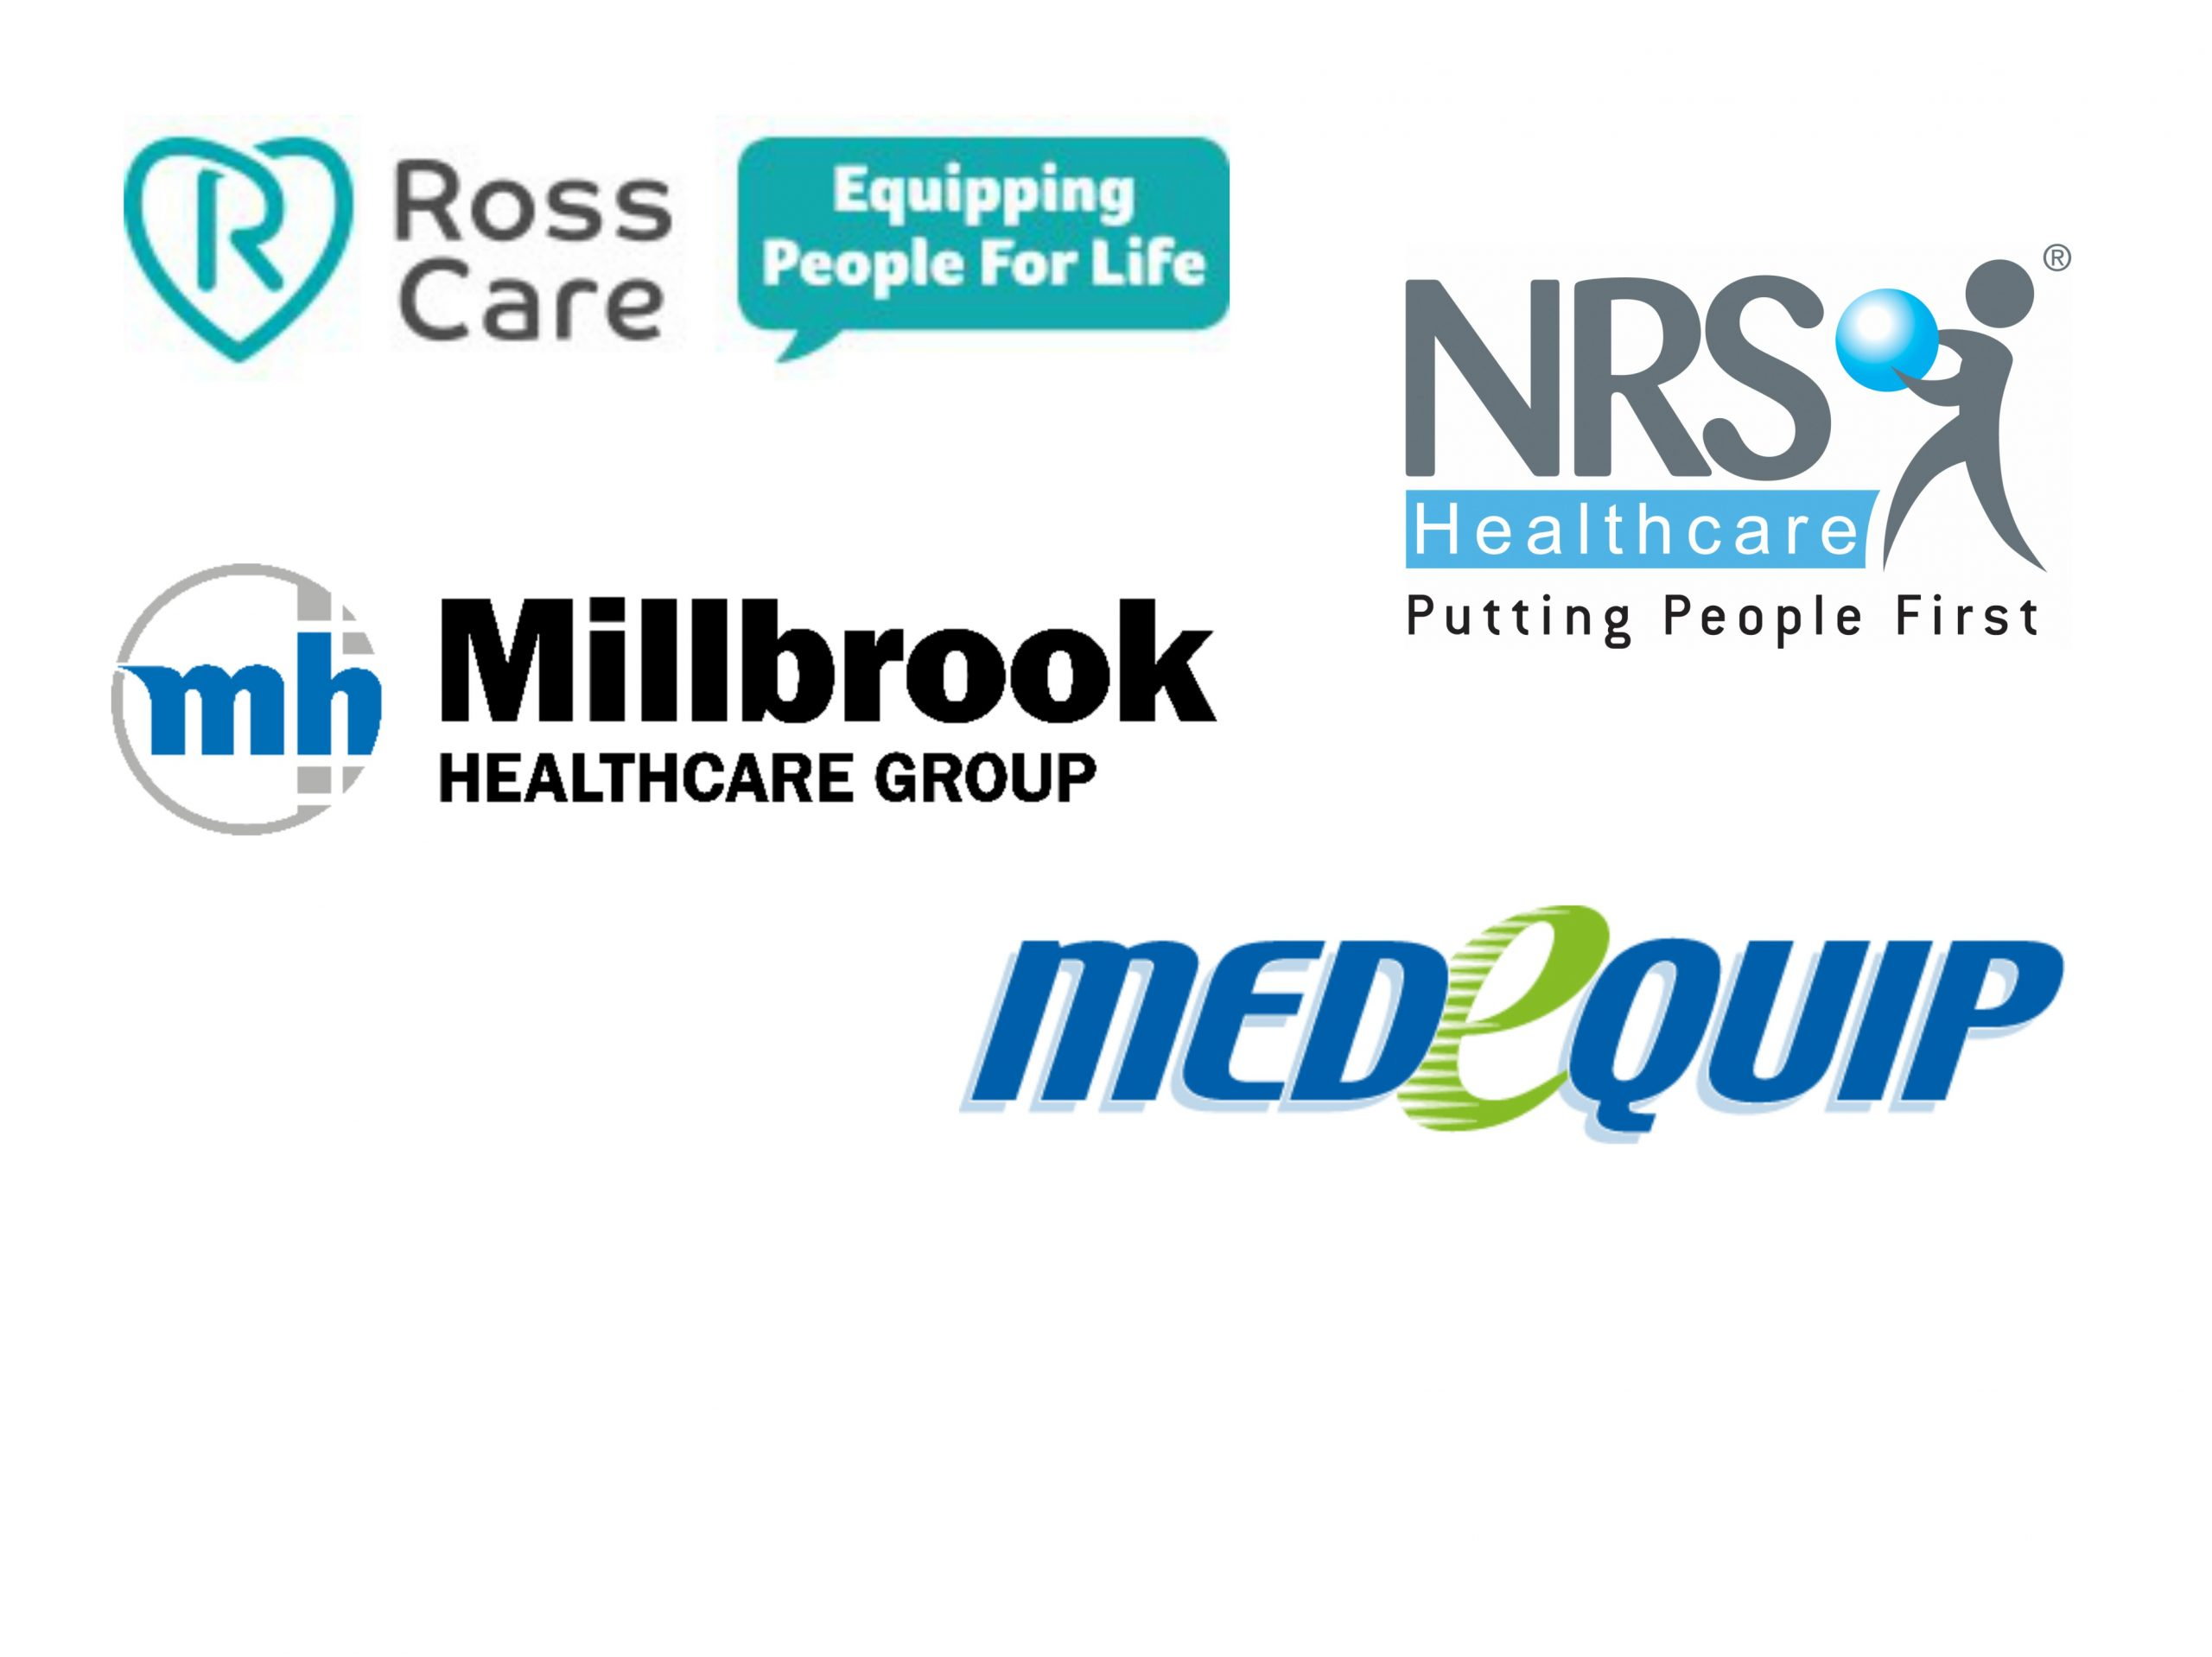 Leading Outsource CES Providers Working Together to Support NHS and Local Authorities